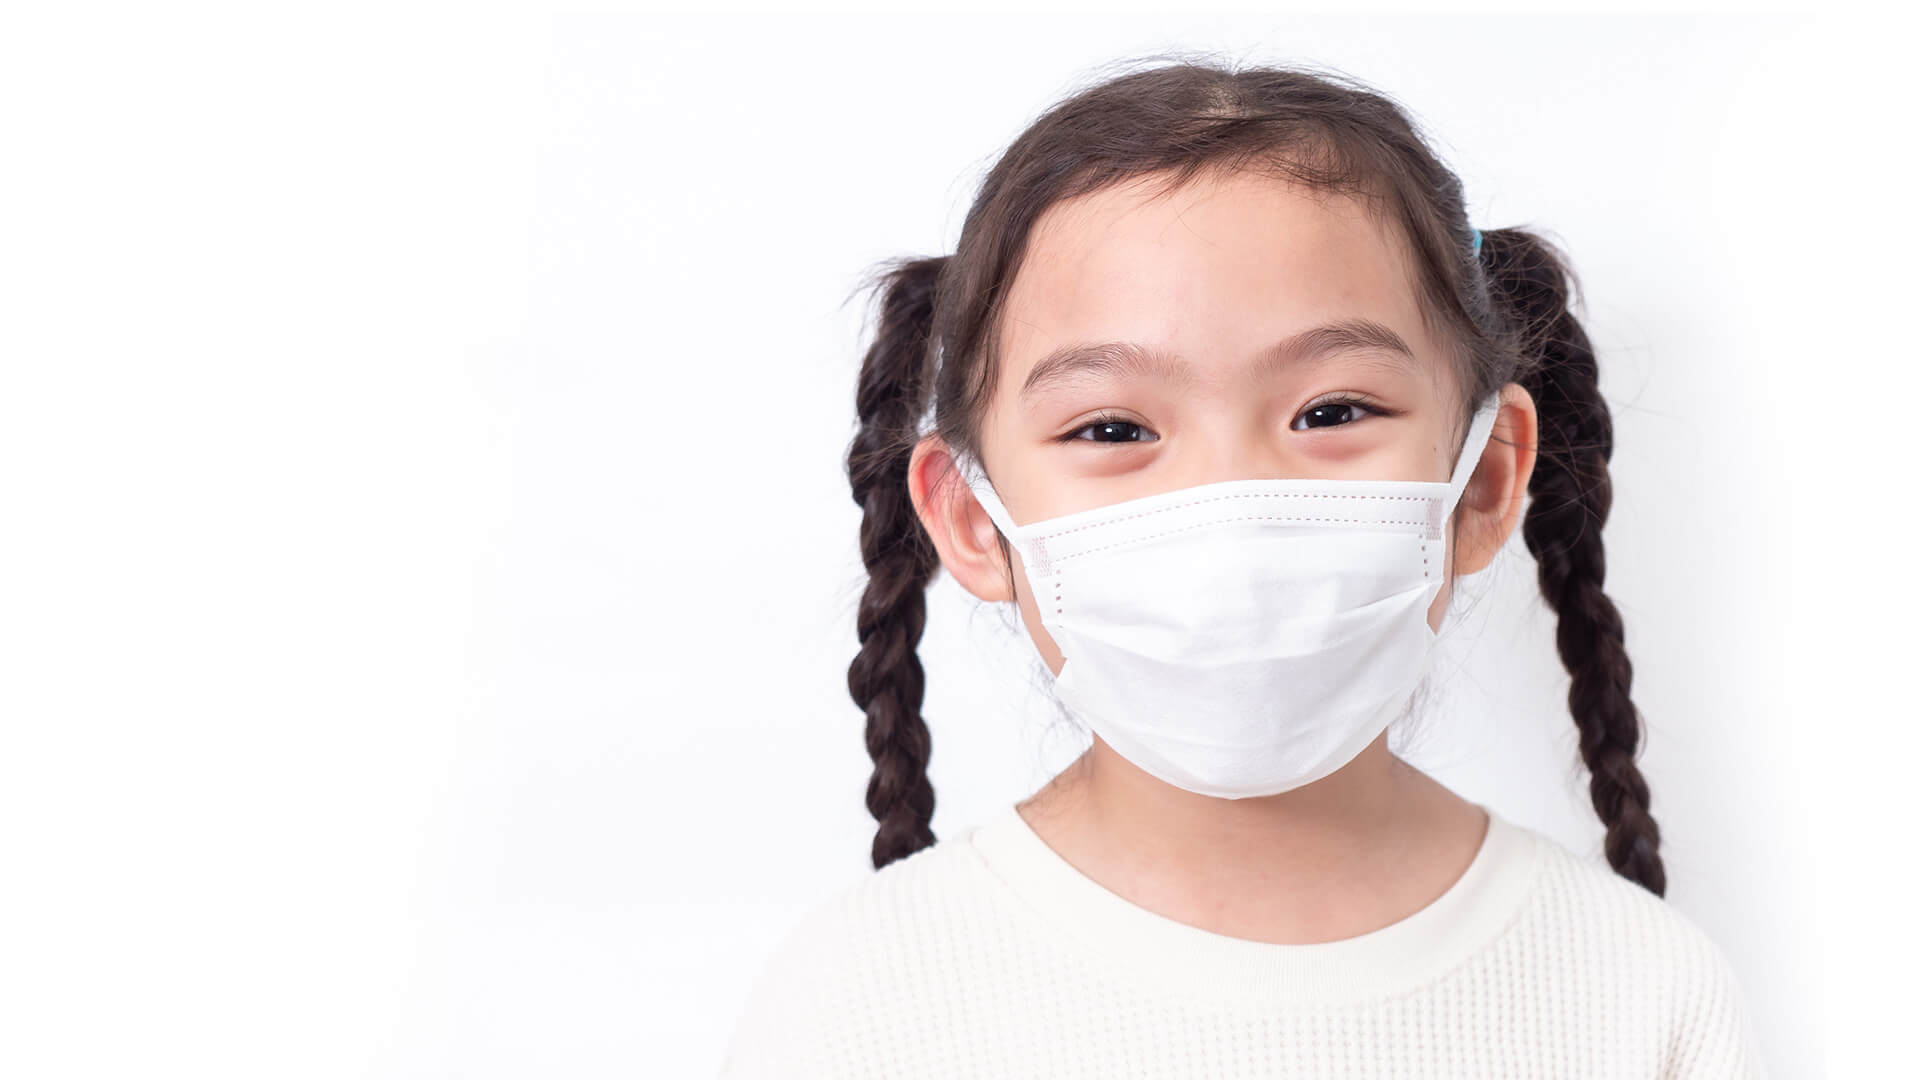 The CDC recently released updated guidance for masking and social distancing, saying fully vaccinated people no longer need to take the safety precautions in most settings. While this news is encouraging, it's important to keep in mind that many children are not yet eligible for the COVID-19 vaccine and are unable to protect themselves from the virus.